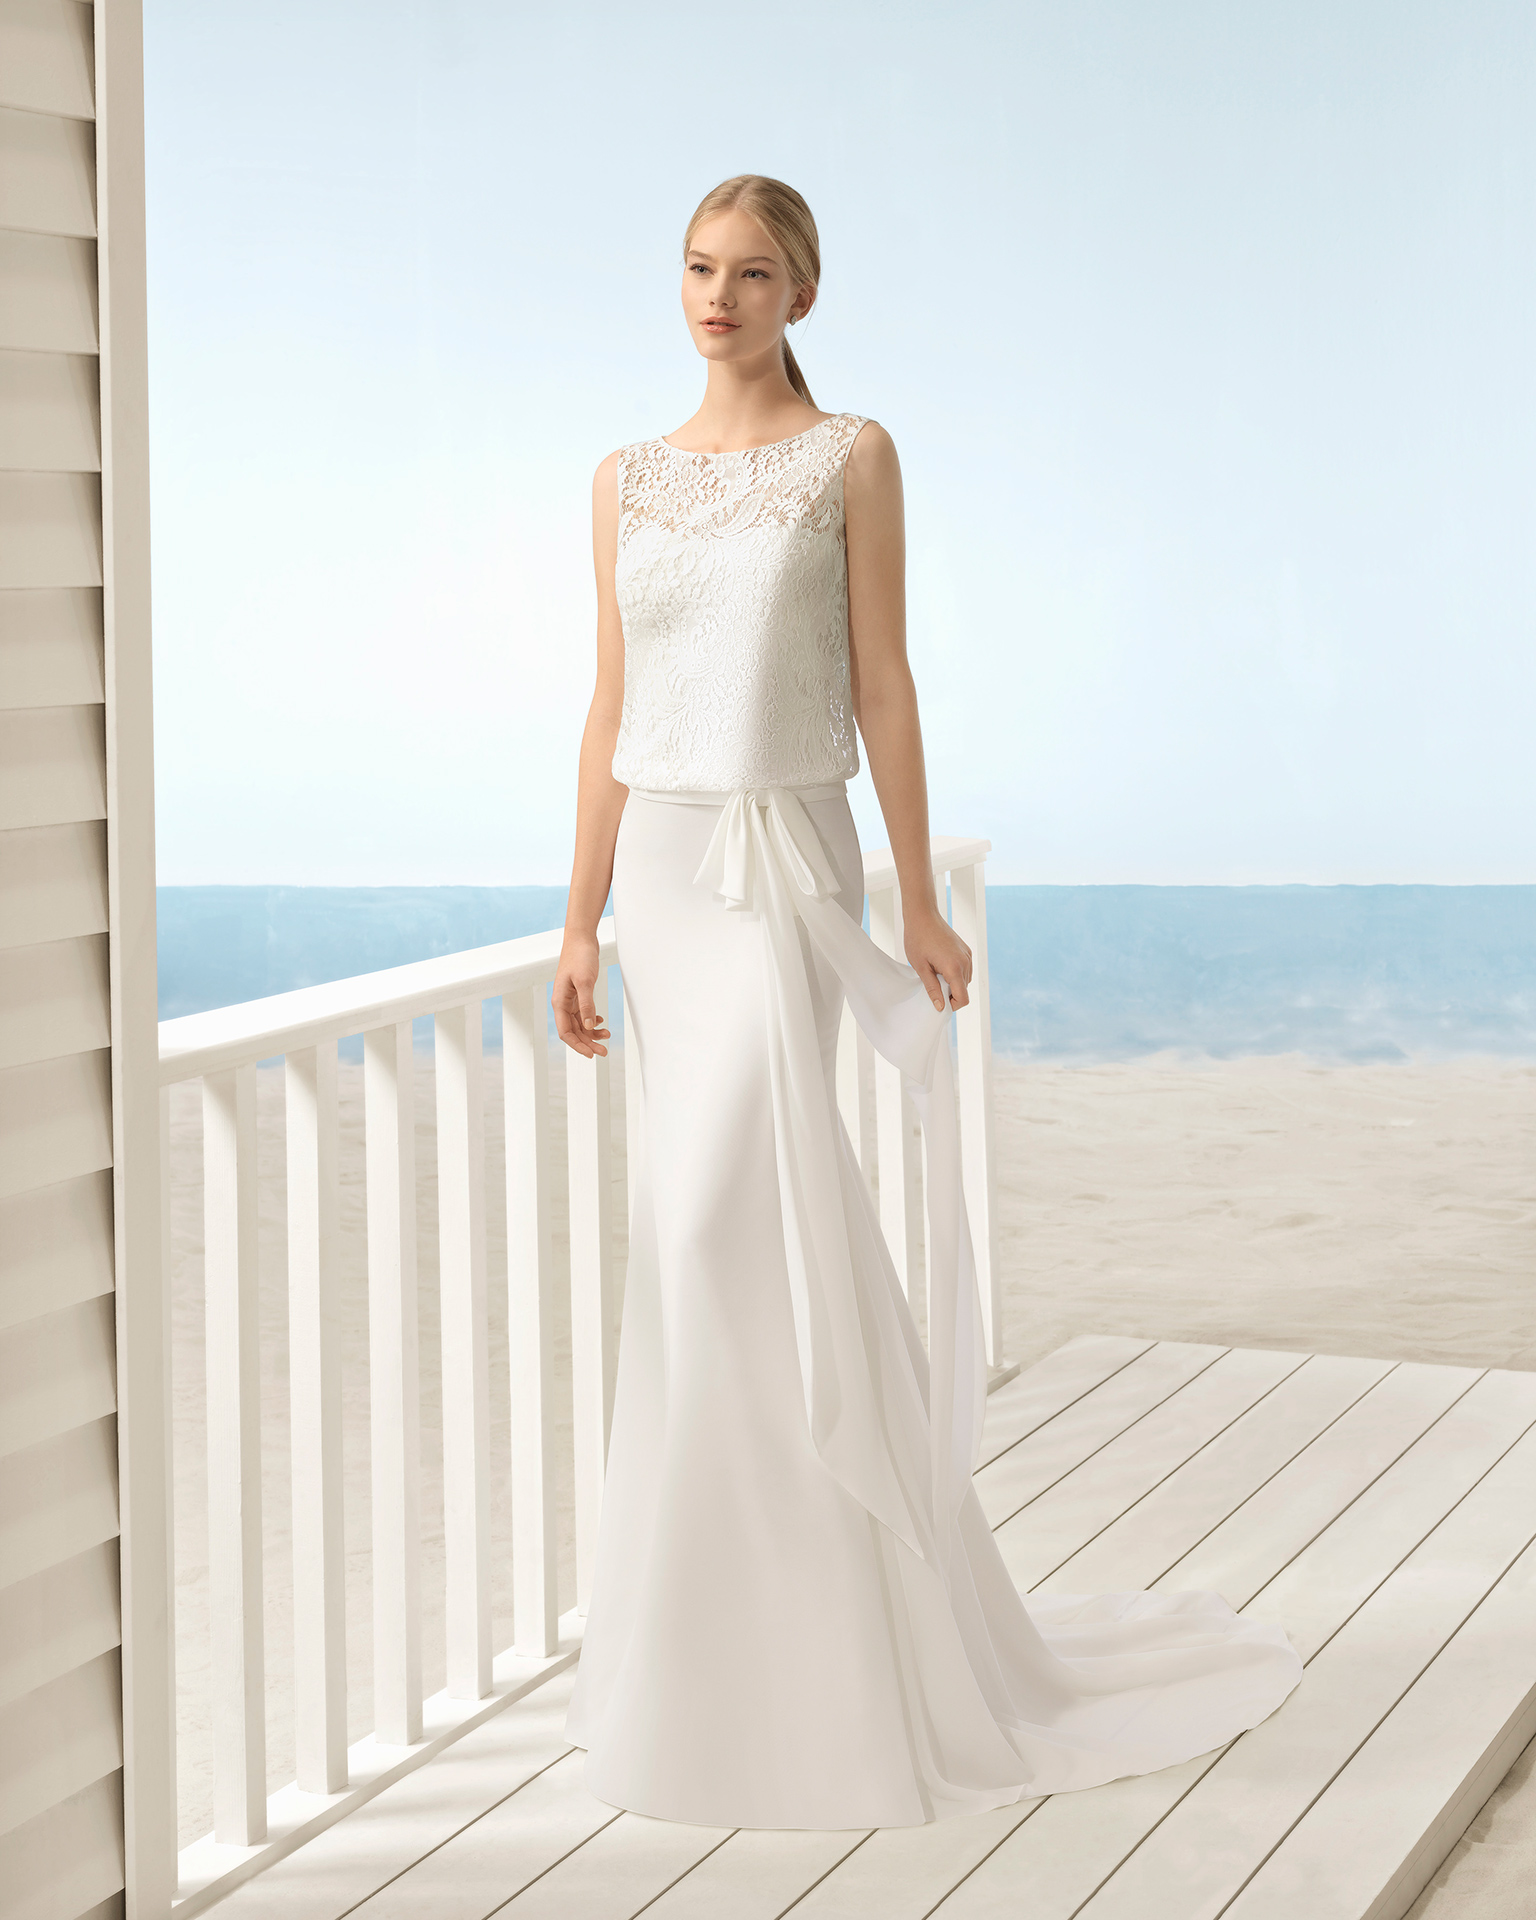 Boho-style lace and chiffon wedding dress with strapless bloused bodice with illusion overlay.